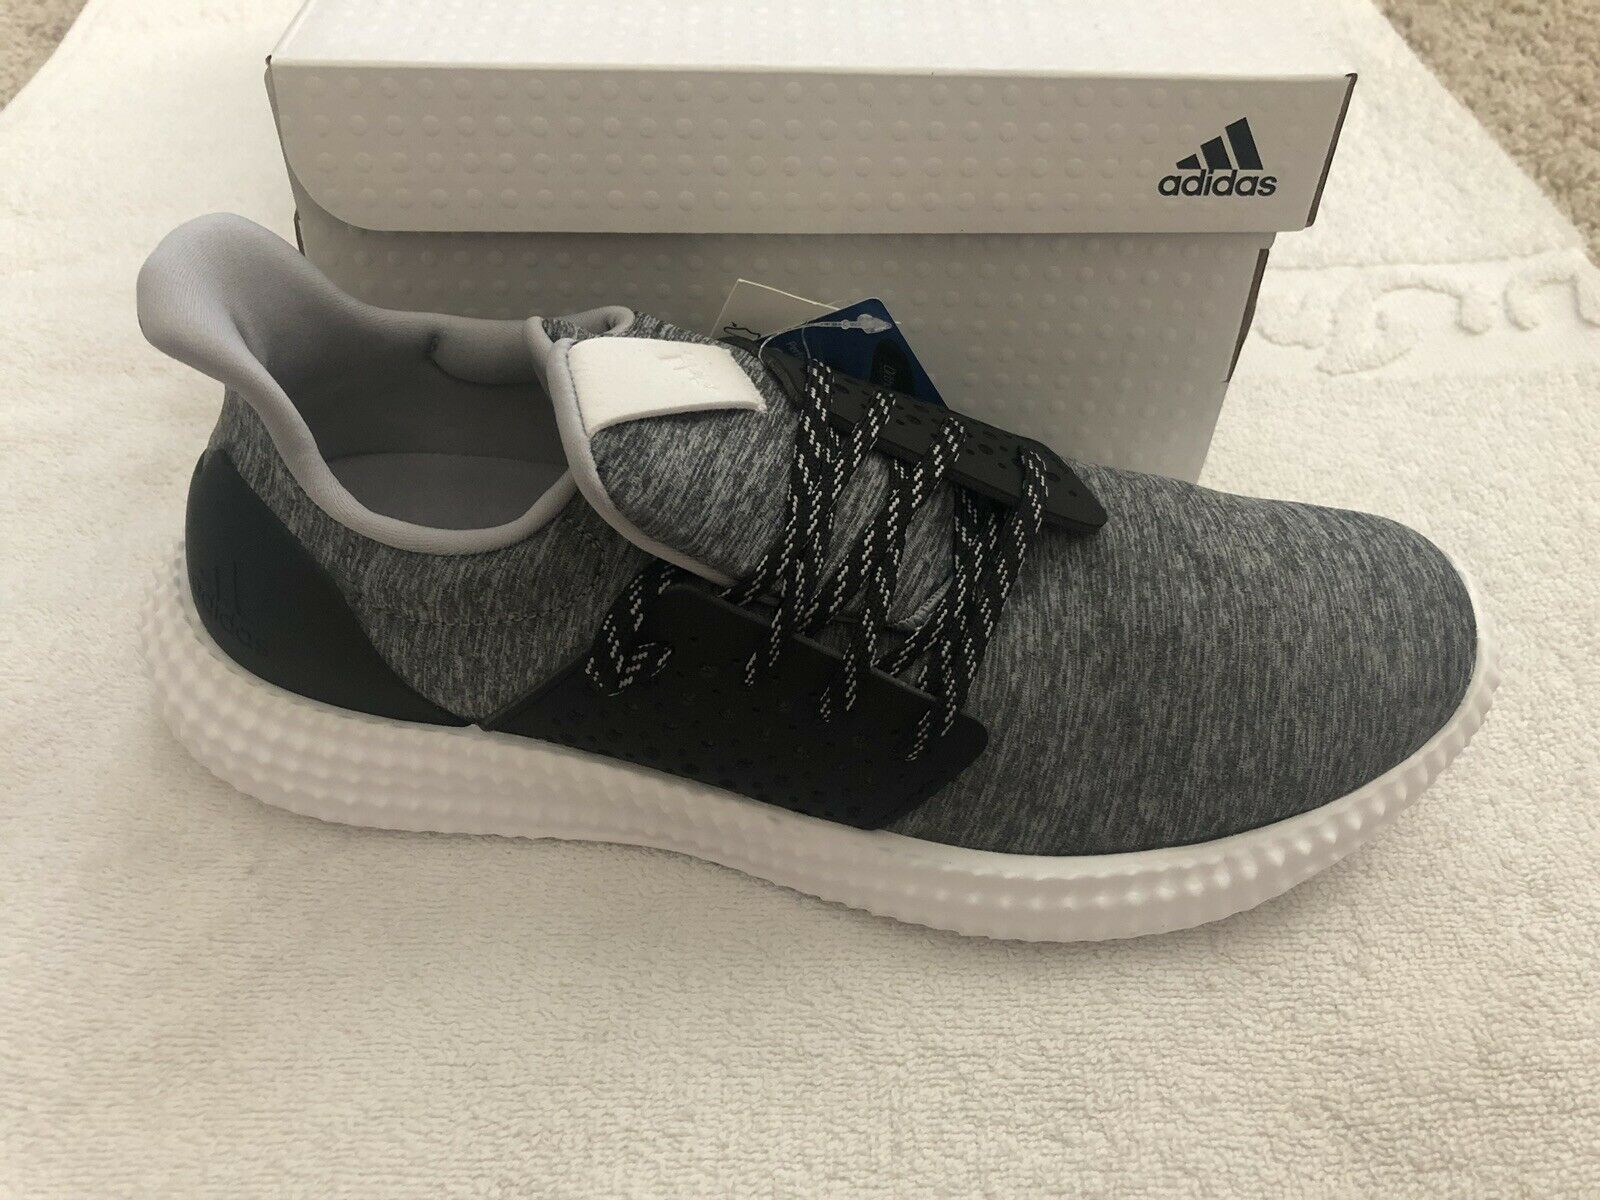 New In Box Adidas 24 7 Trainer Running shoes NIB SZ8.5 Sz 8.5 S80982